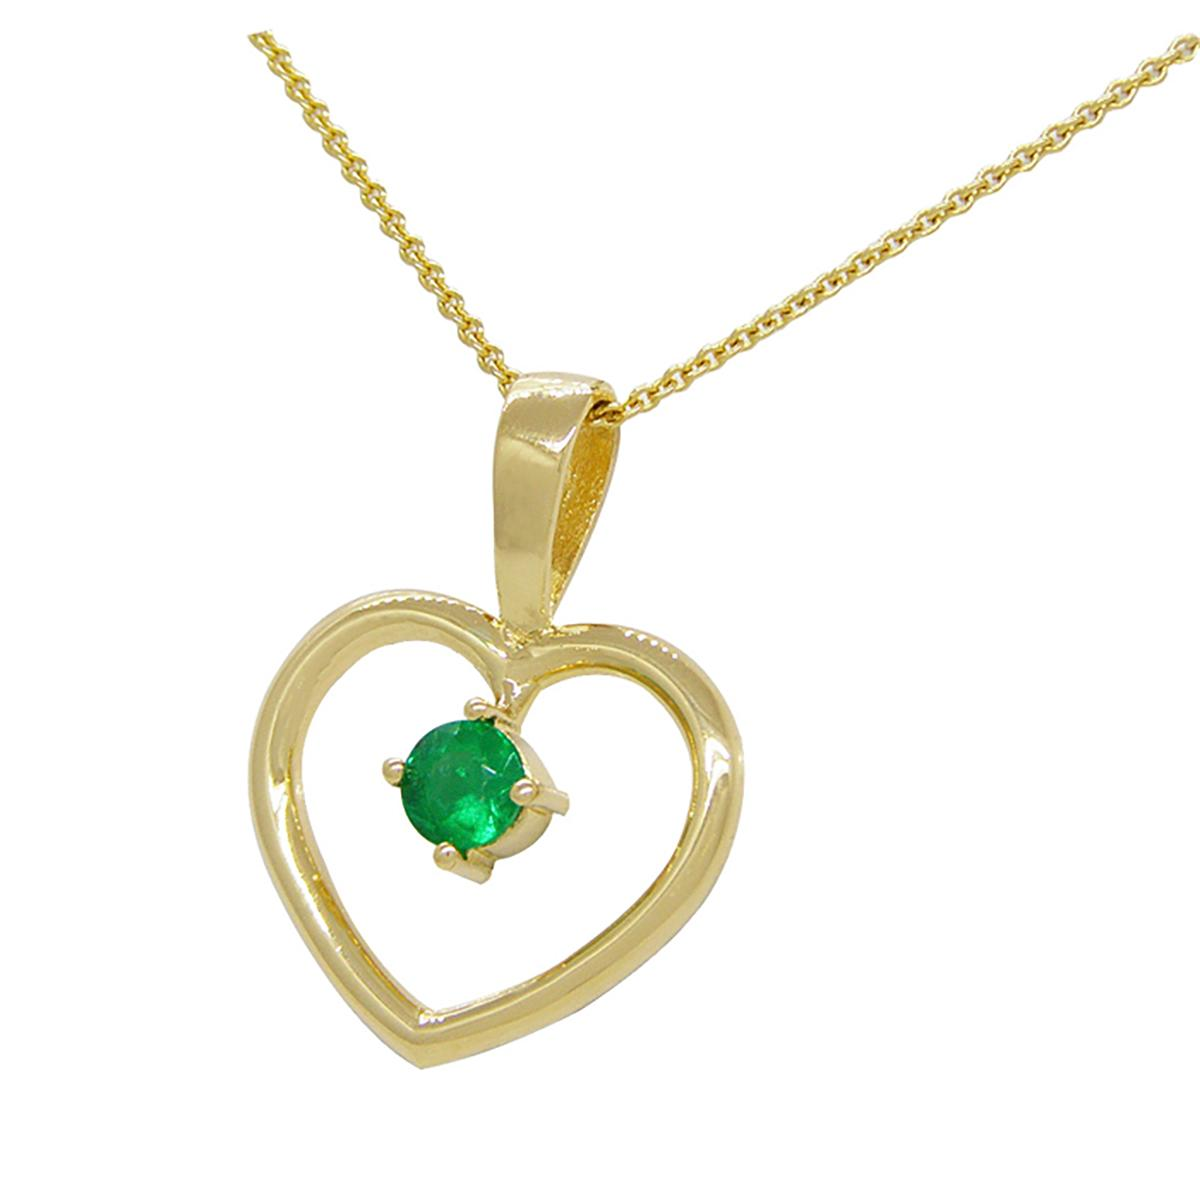 18k-yellow-gold-heart-shape-emerald-pendant-with-0.22-ct.-round-cut-emerald